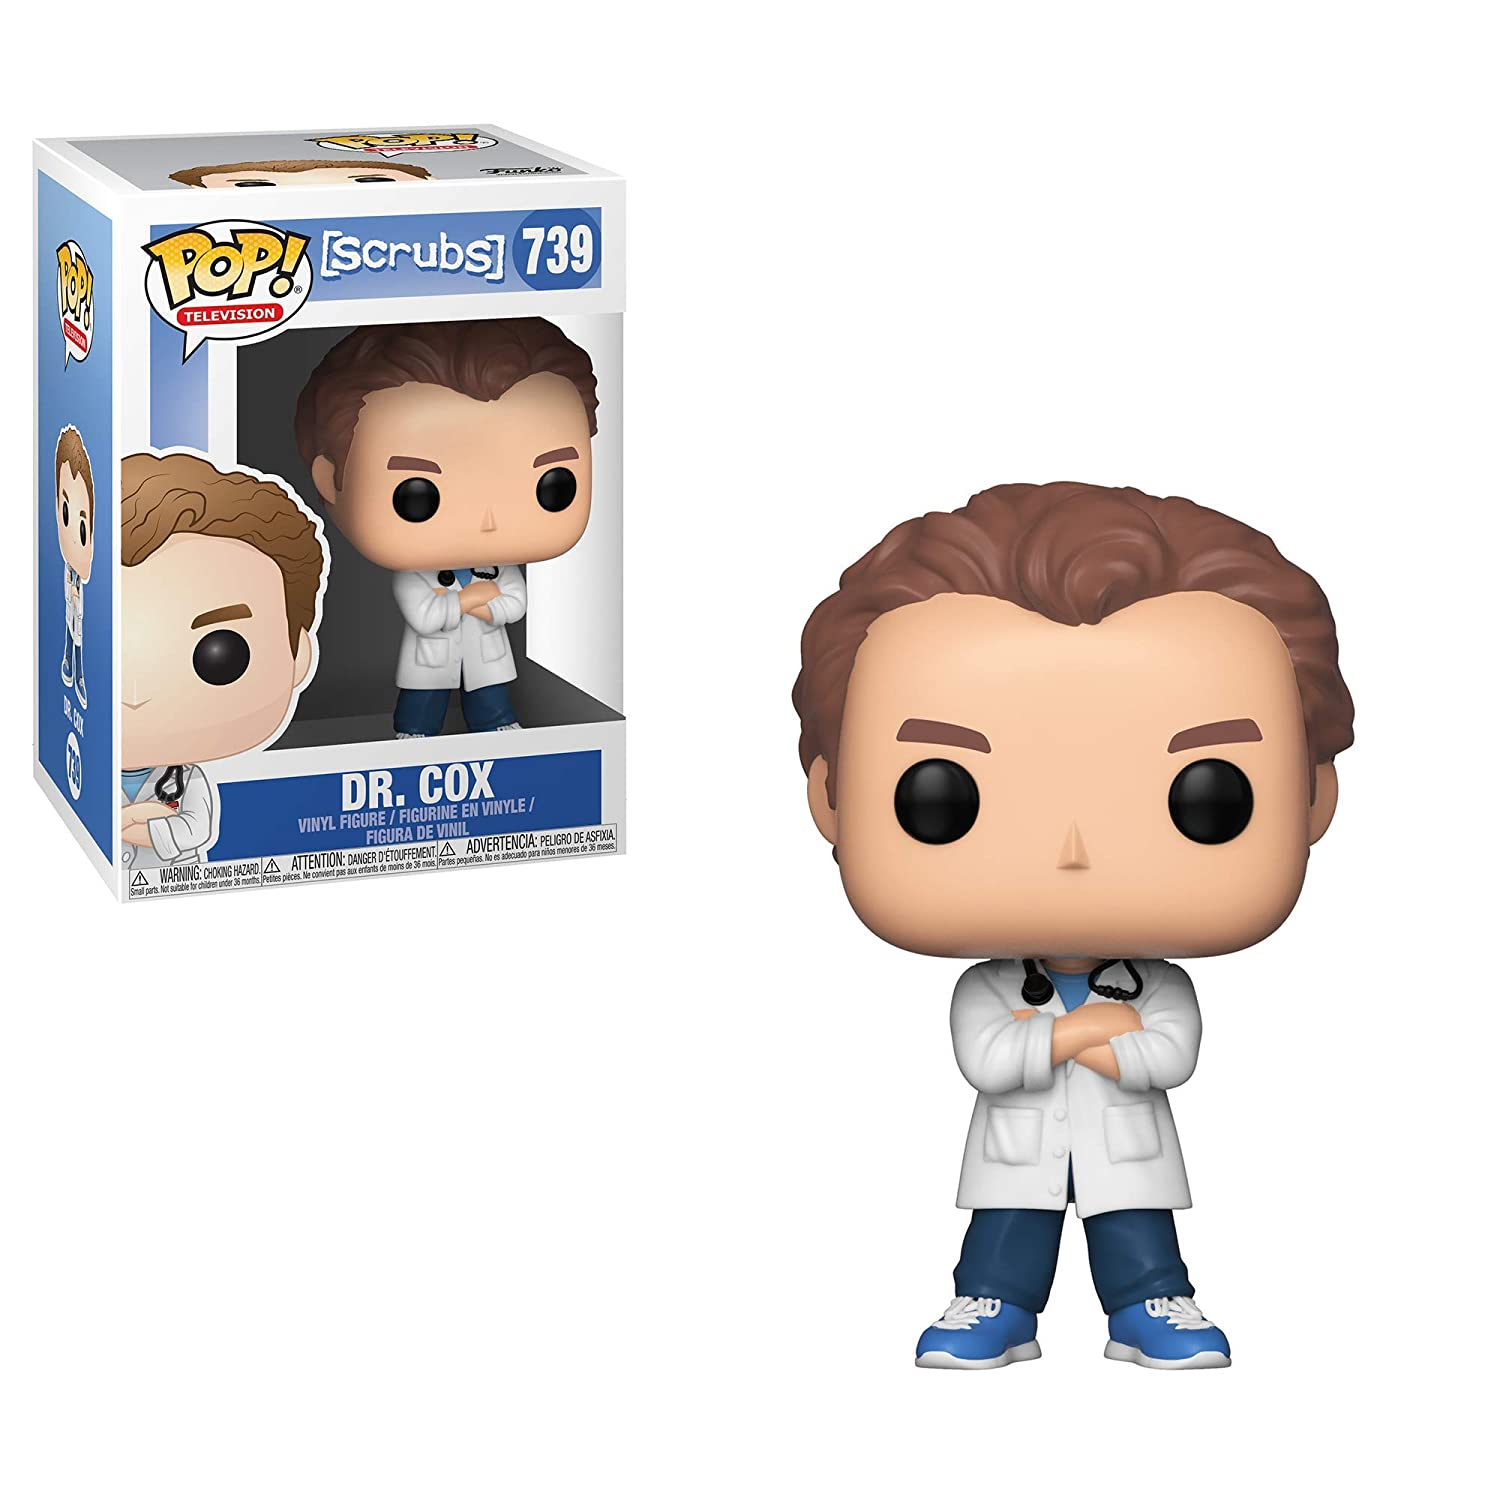 DR Cox Scrubs Funko Figurine Pop